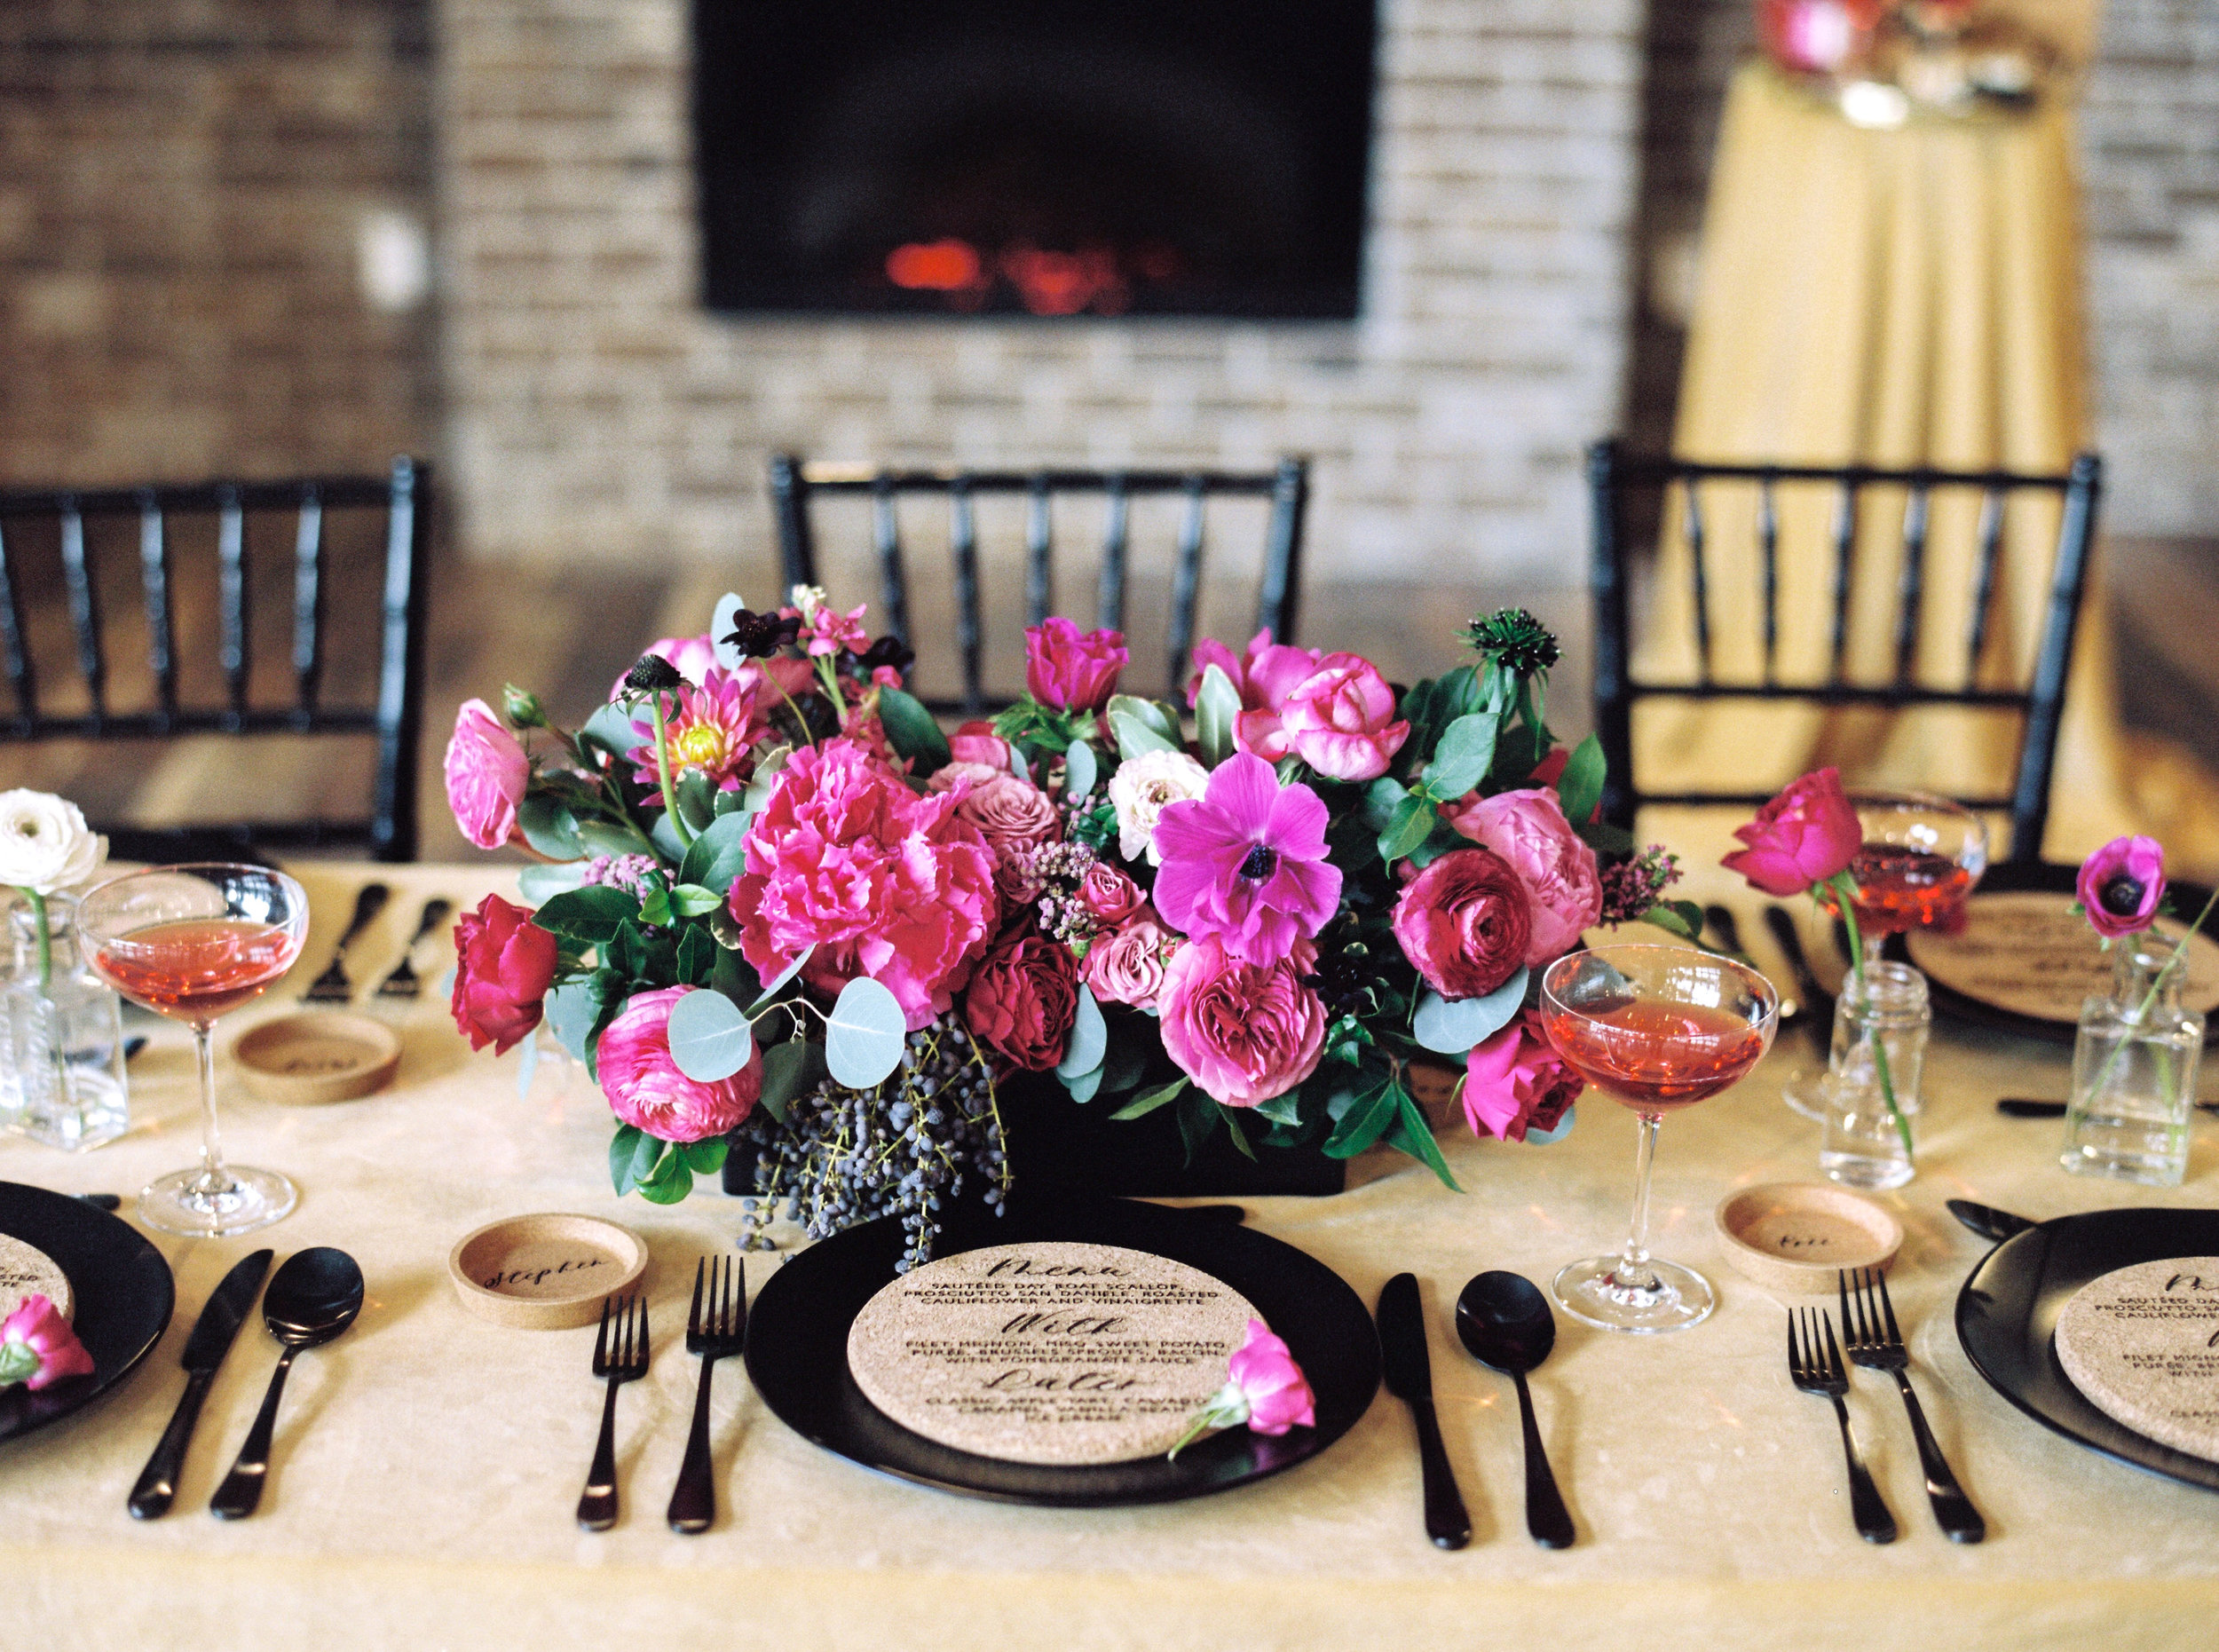 boho-inspired-wedding-at-casa-bella-in-sunol-california-48.jpg